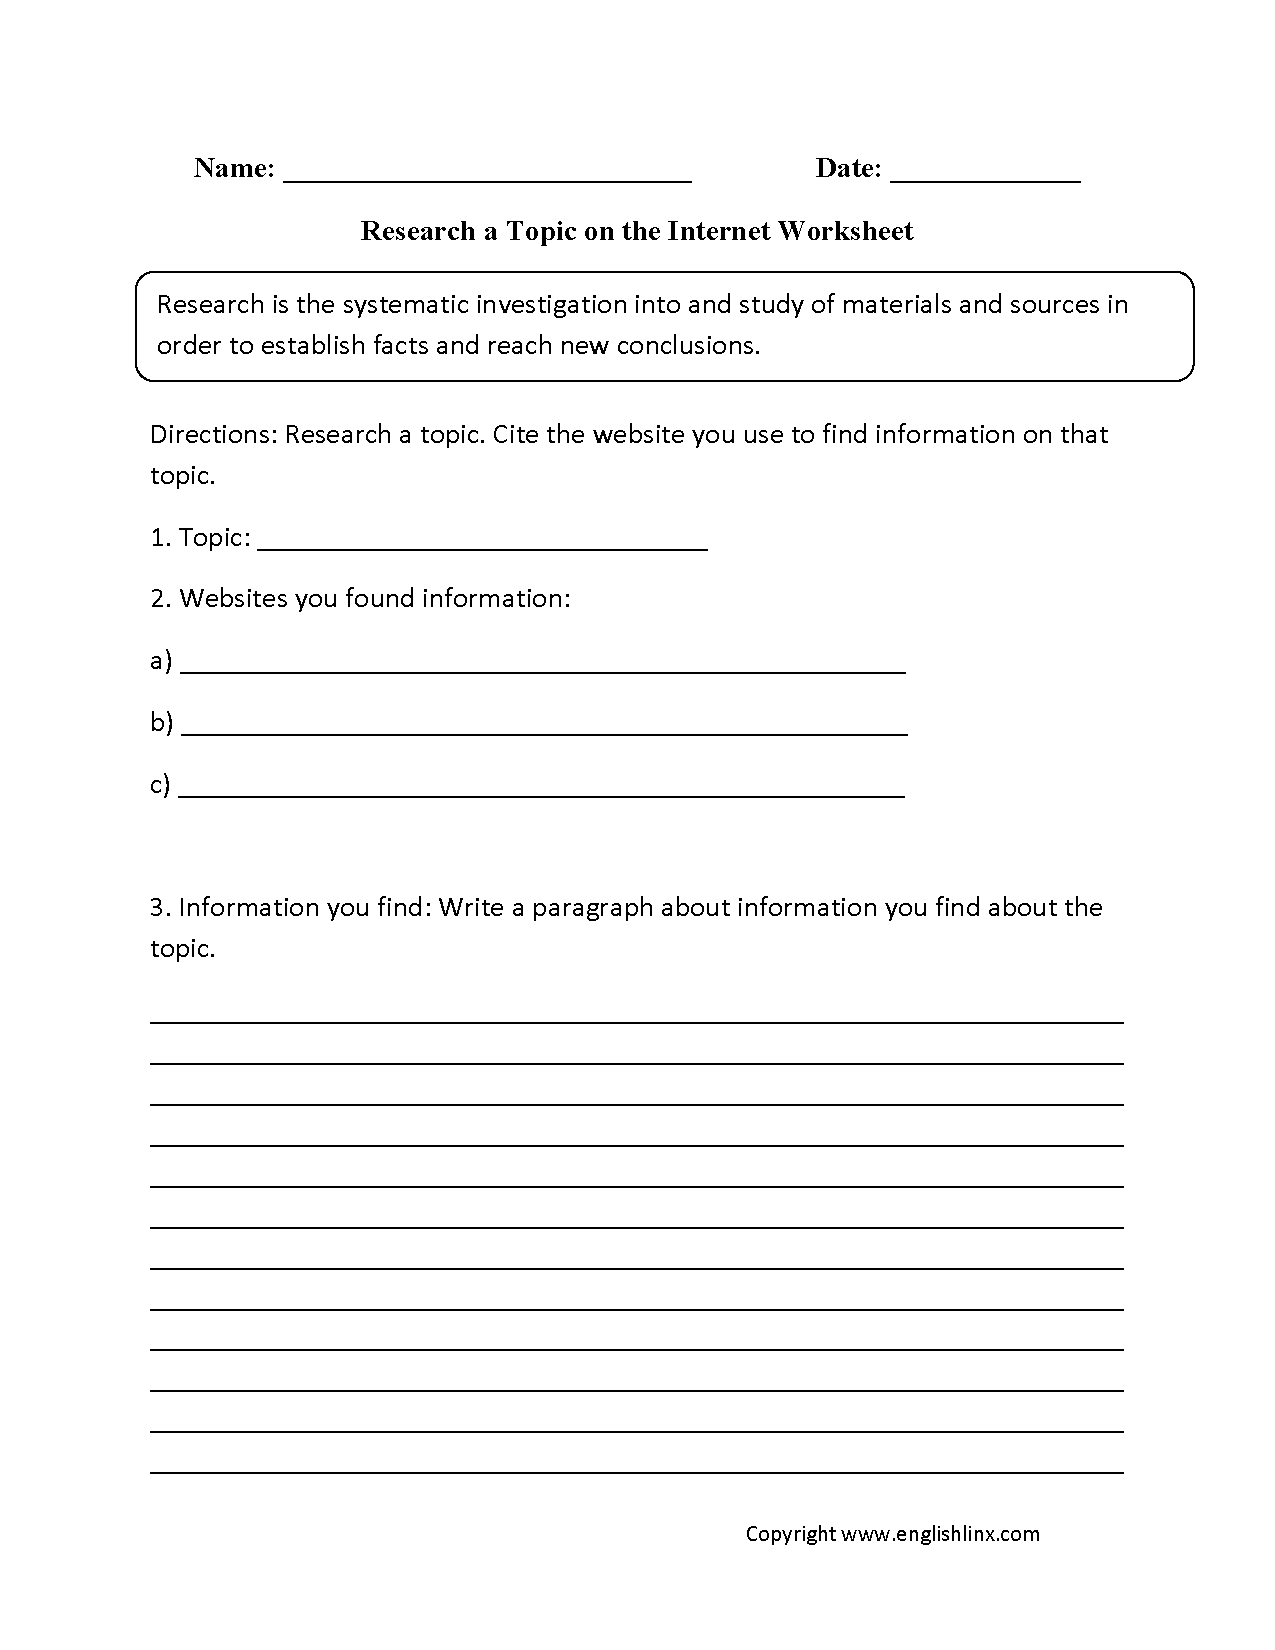 Aldiablosus  Remarkable Englishlinxcom  Research Worksheets With Inspiring On The Internet Worksheet With Easy On The Eye Temporary Maintenance Worksheet Also Momentum Problems Worksheet In Addition Number Worksheets  And Tracing Names Worksheet As Well As What Is Science Worksheets For Middle School Additionally Pencil Control Worksheets Free From Englishlinxcom With Aldiablosus  Inspiring Englishlinxcom  Research Worksheets With Easy On The Eye On The Internet Worksheet And Remarkable Temporary Maintenance Worksheet Also Momentum Problems Worksheet In Addition Number Worksheets  From Englishlinxcom